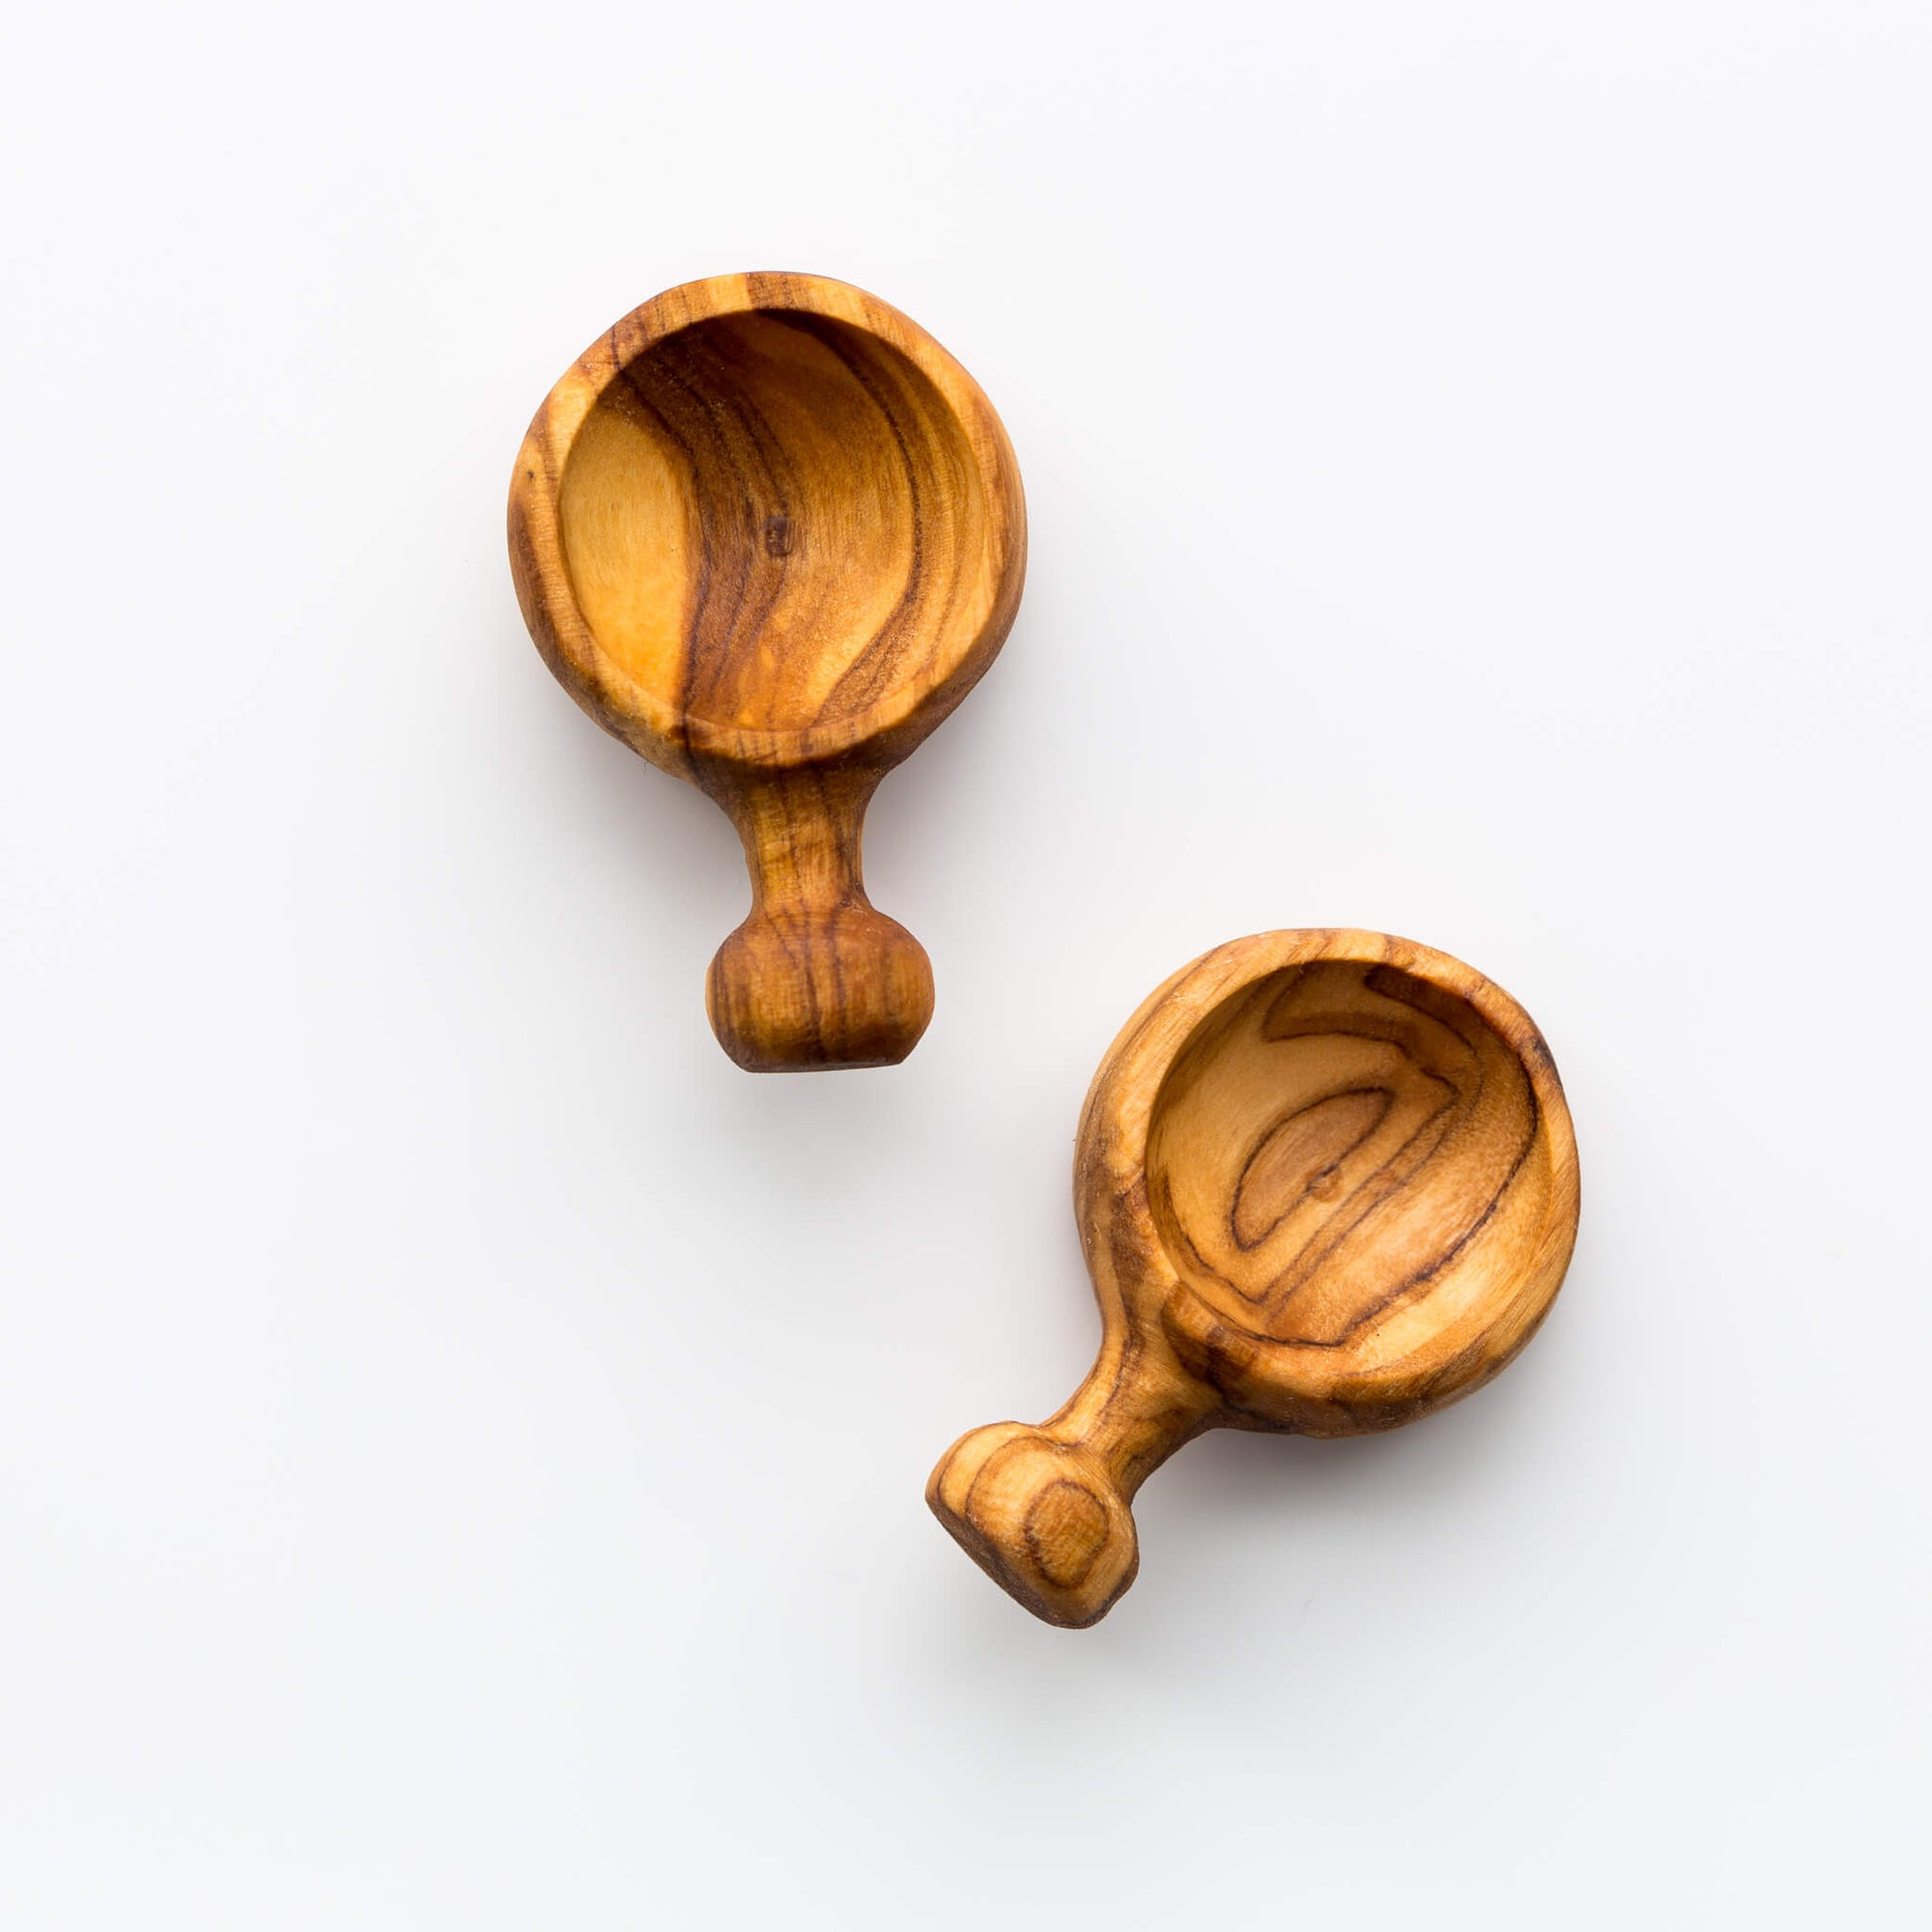 Wooden Olive Spoon | Quality Spices & Spice Racks Online UK |